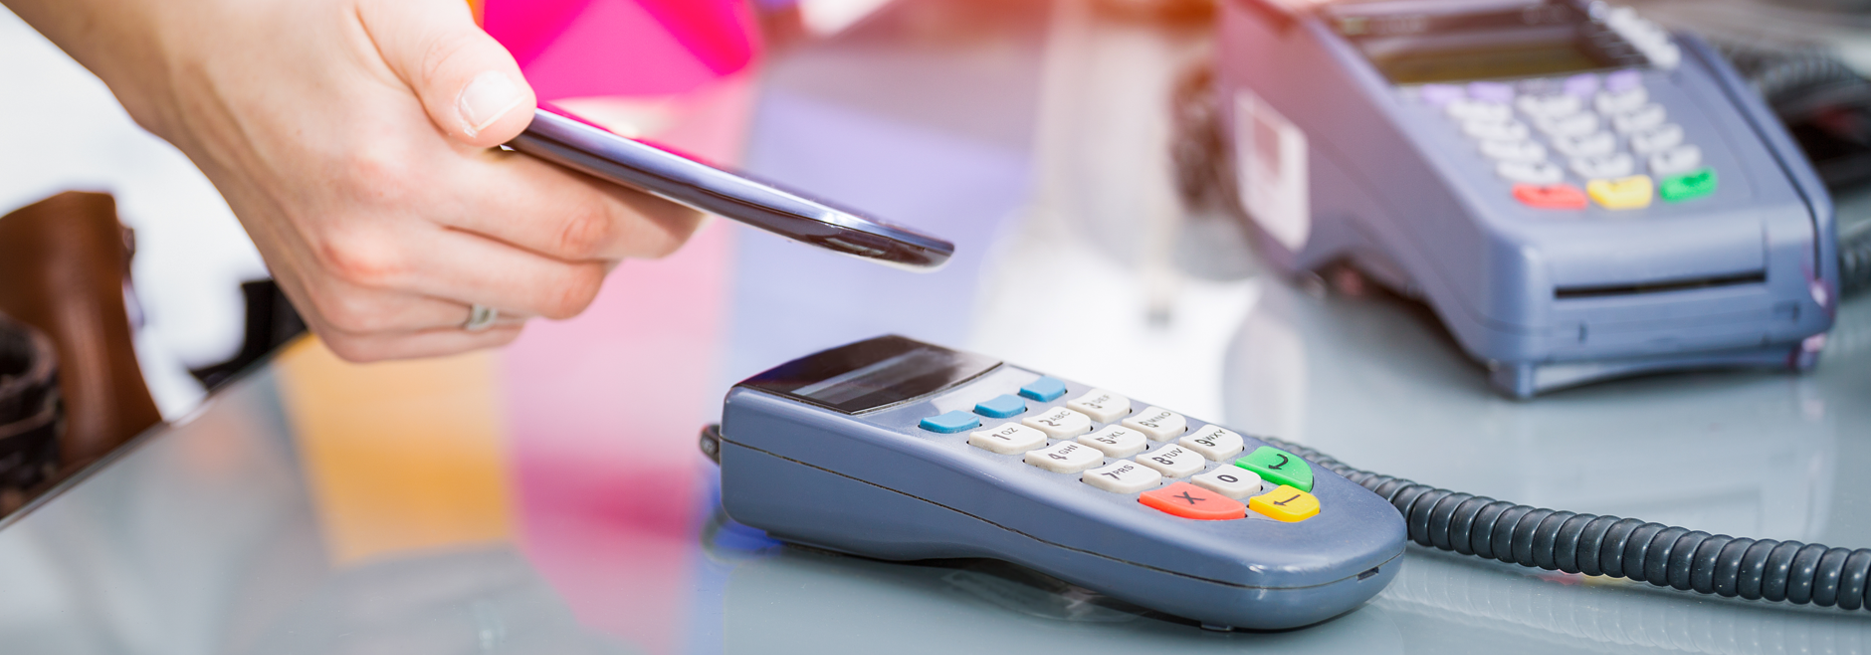 Why Retailers are Moving toward Mobile POS